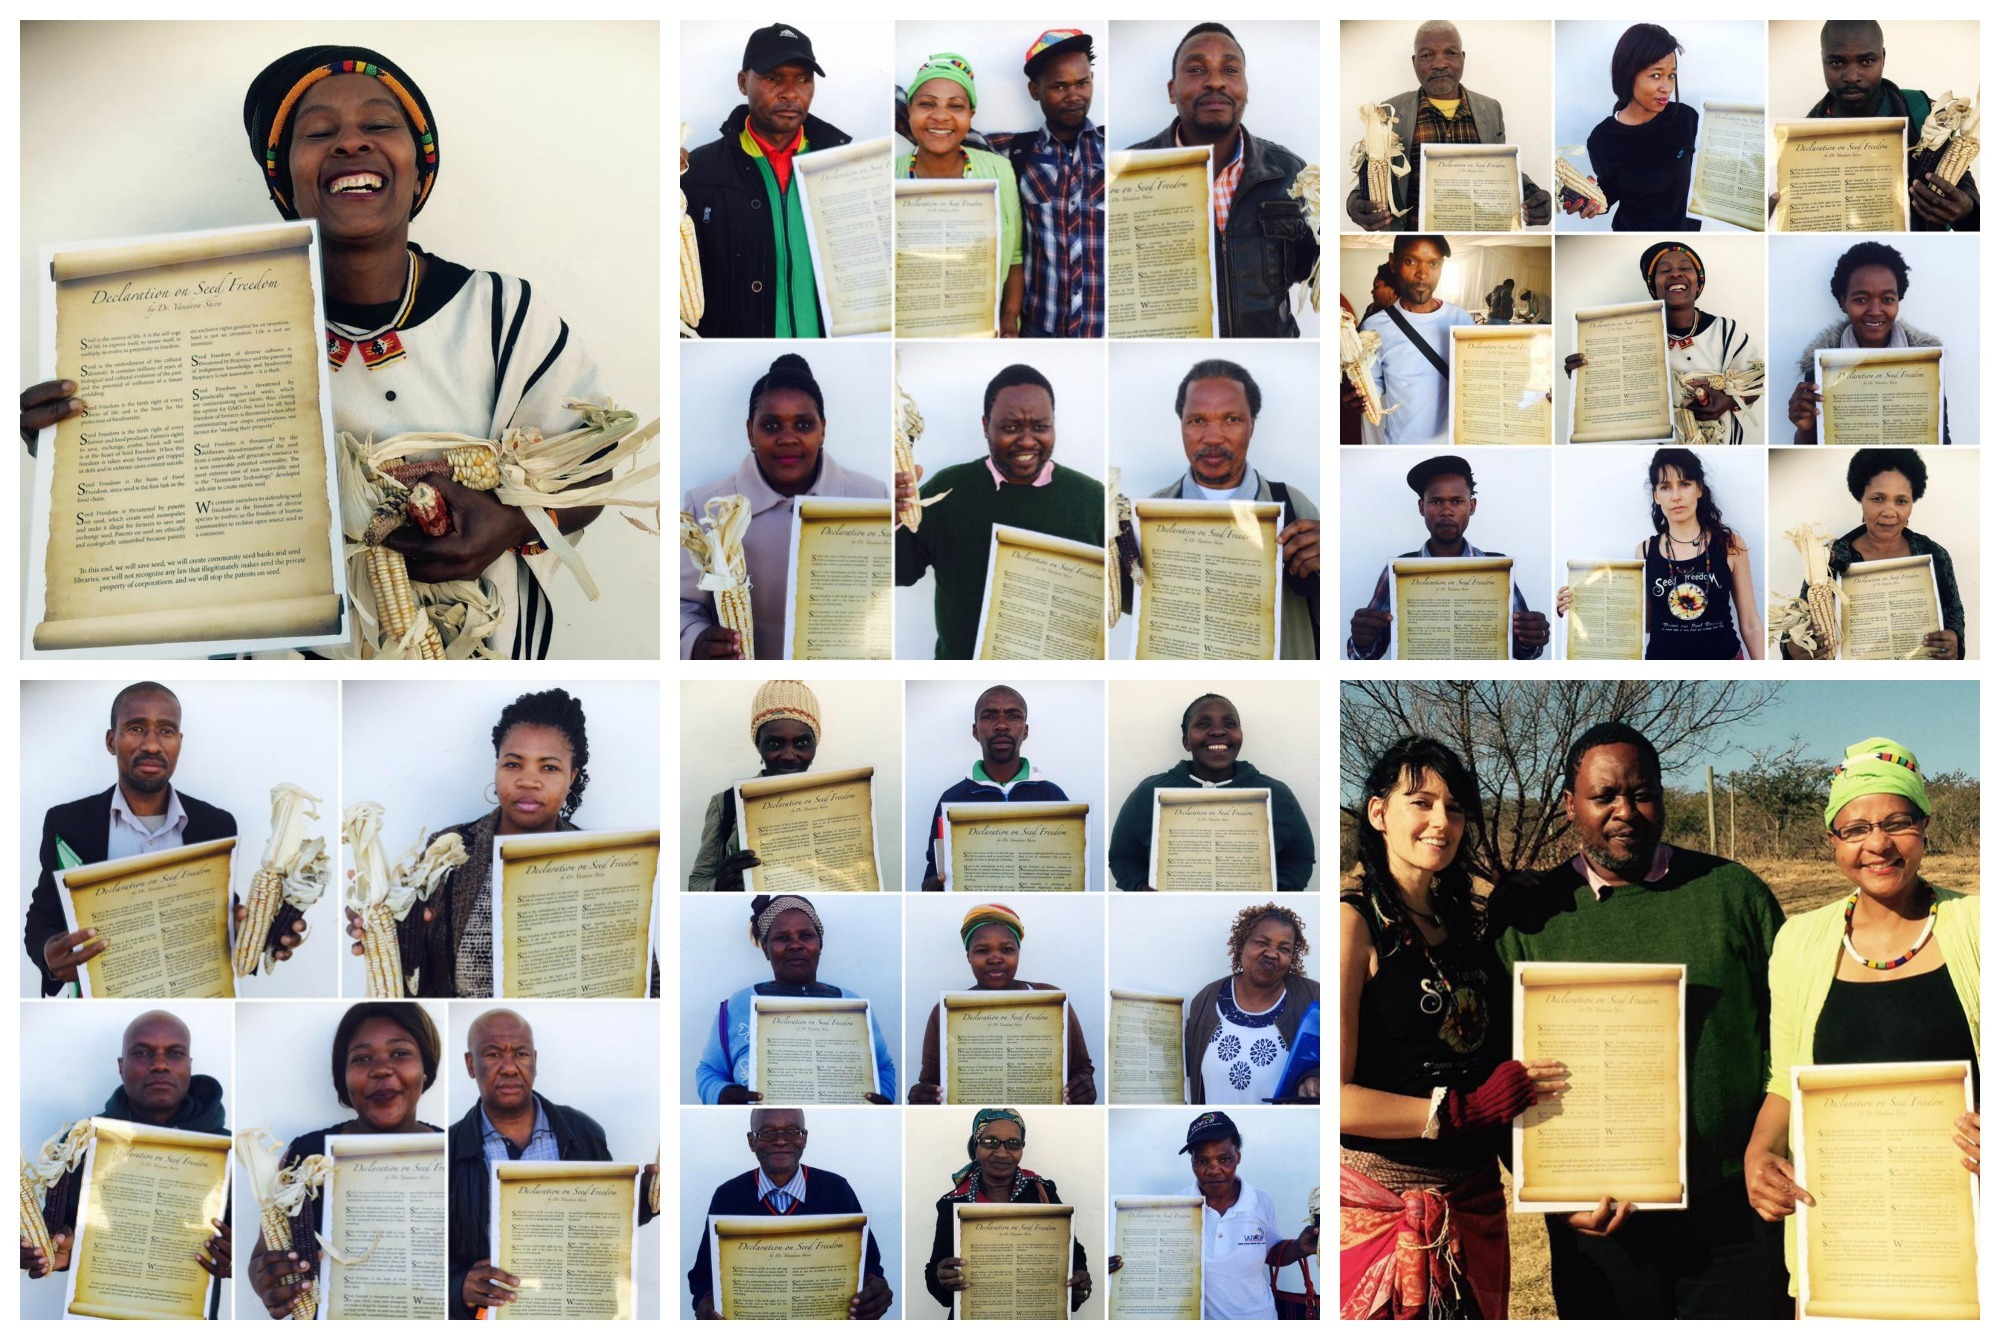 #SeedFreedom Workshops & Pub. Hearings - Opposing the new Plant Breeders & Plant Improvement Act – South Africa